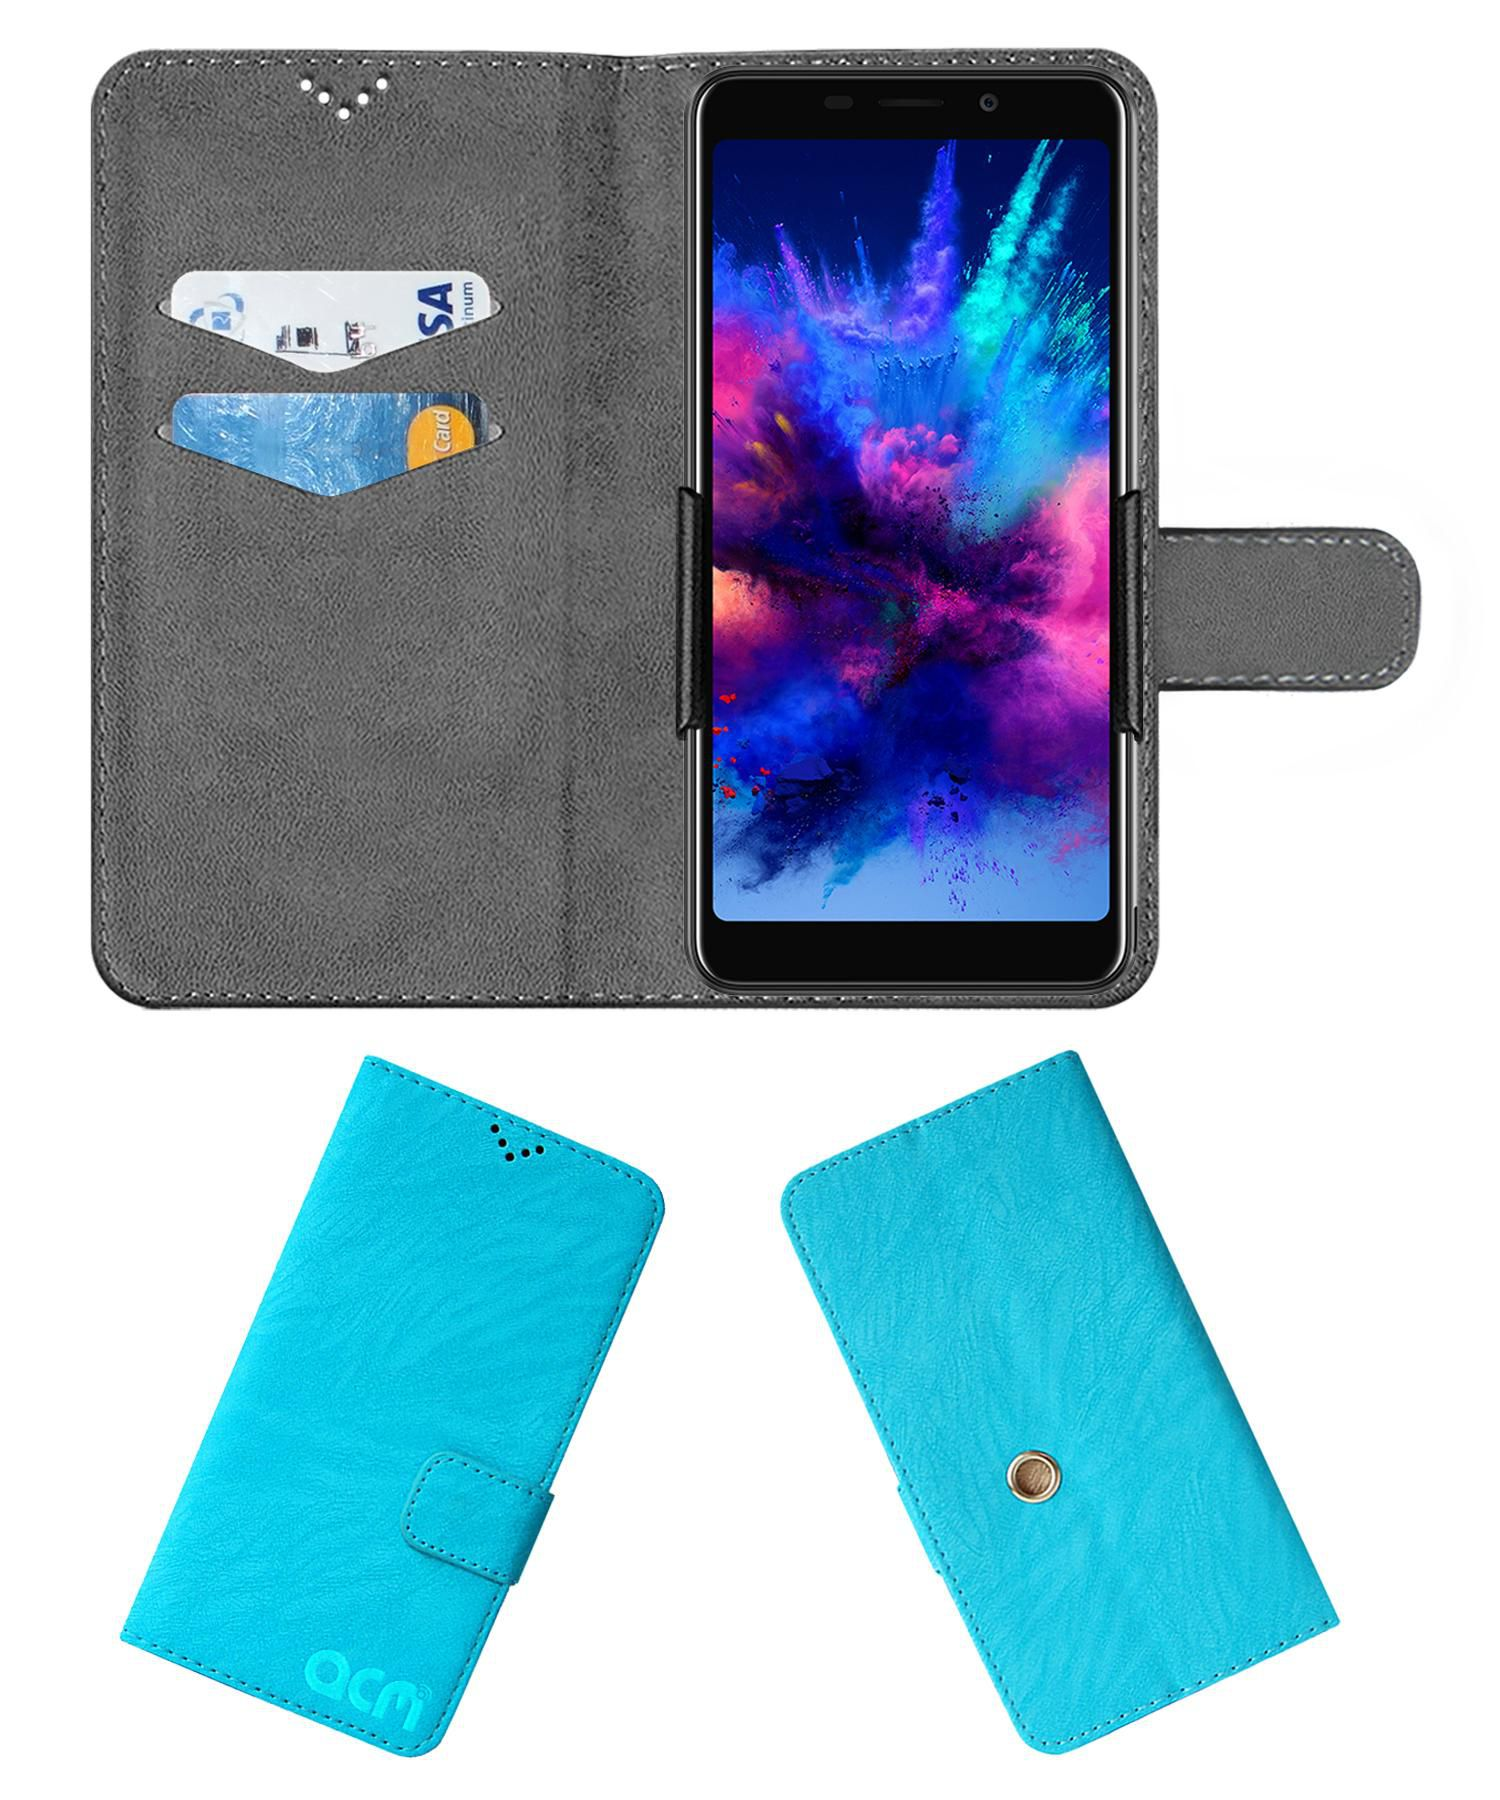 Panasonic P110 Flip Cover by ACM - Blue Clip holder to hold your mobile securely